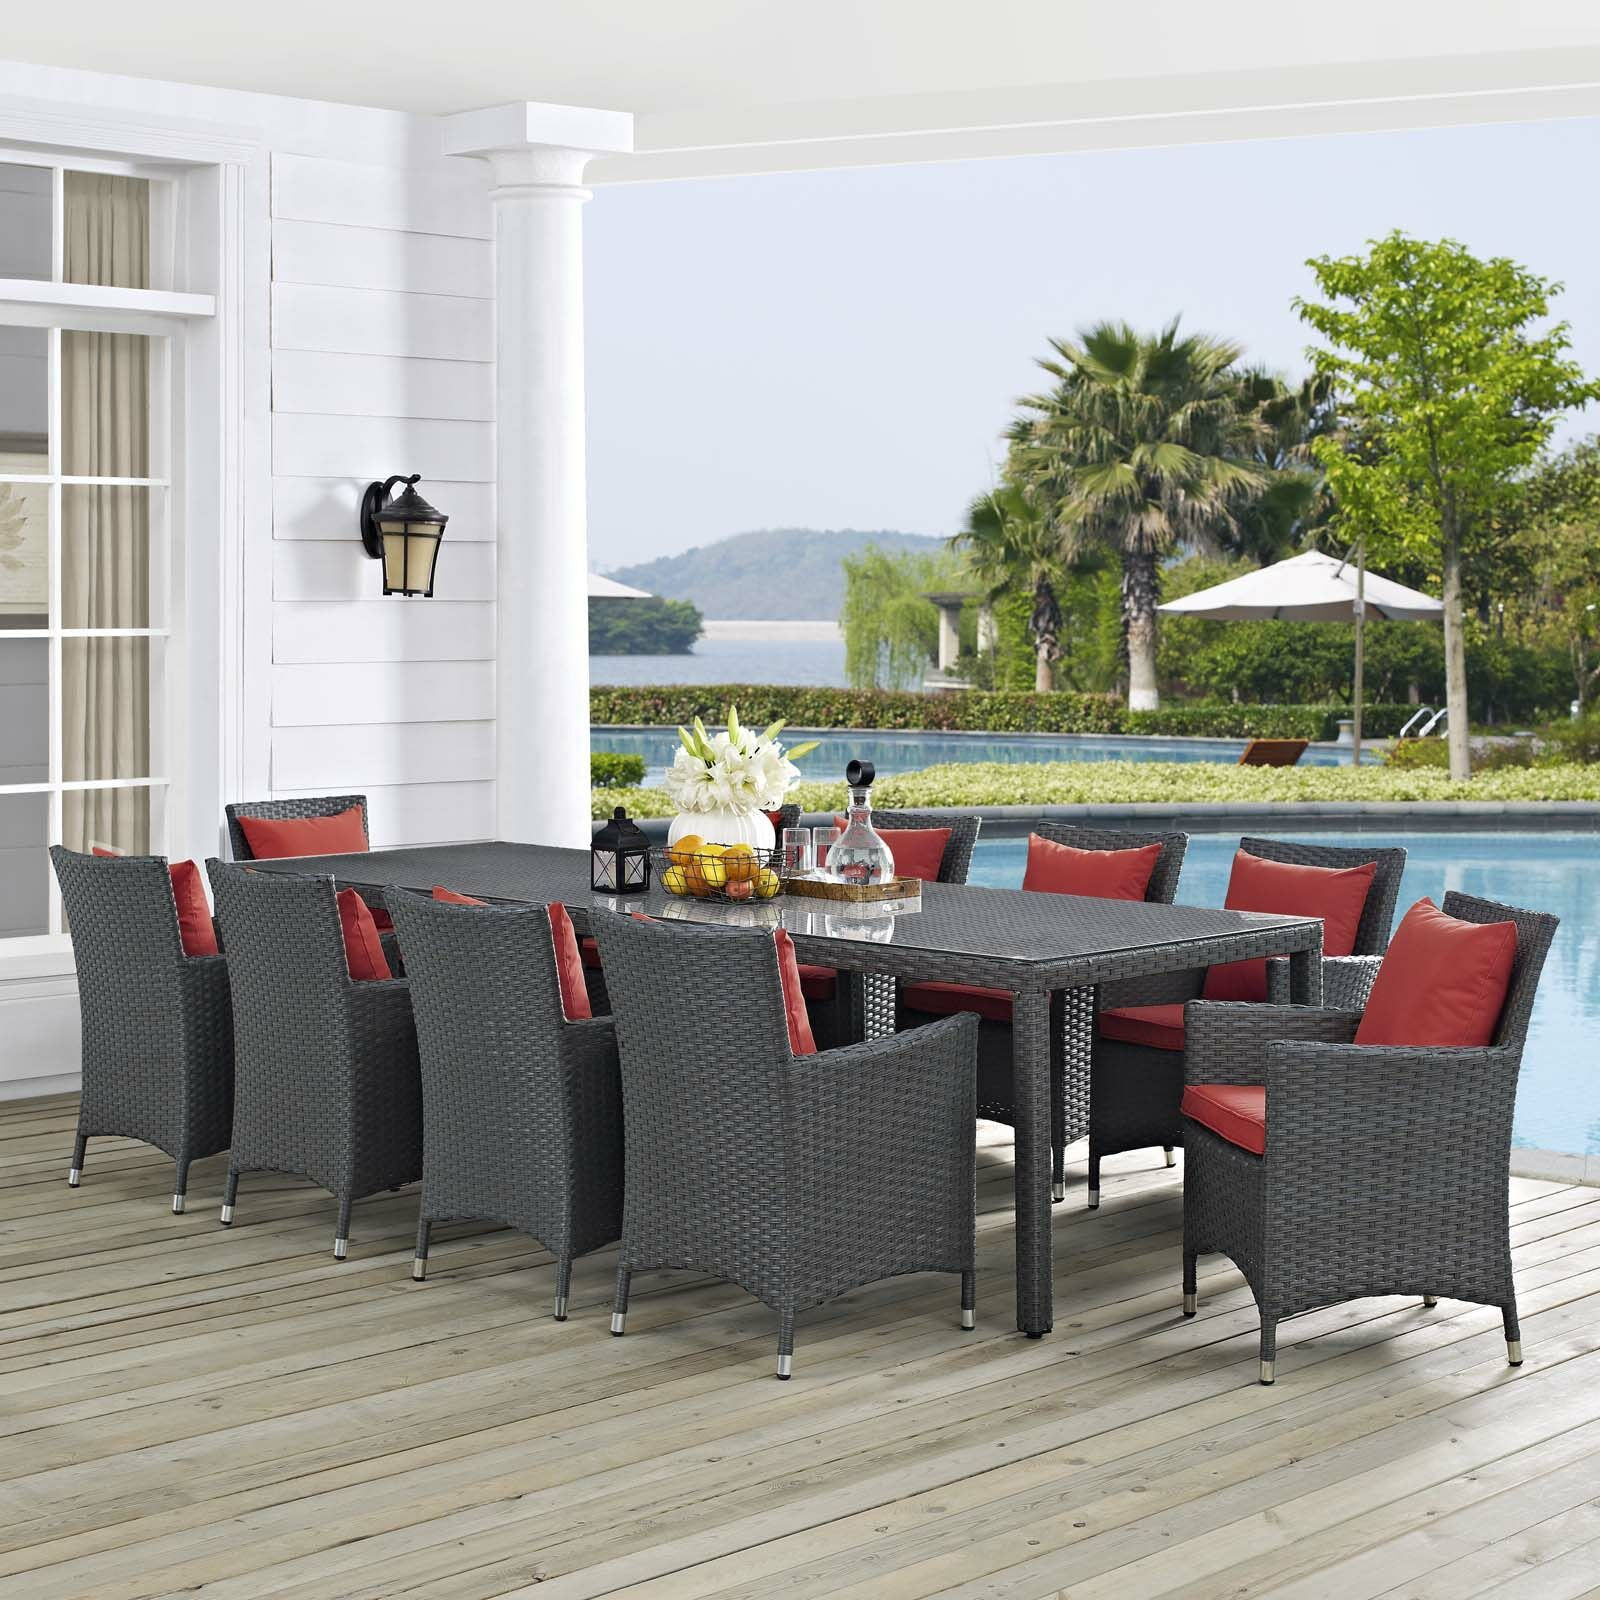 Tripp 11 Piece Dining Set with Sunbrella Cushions Cushion Color: Red, Table Size: 29.5